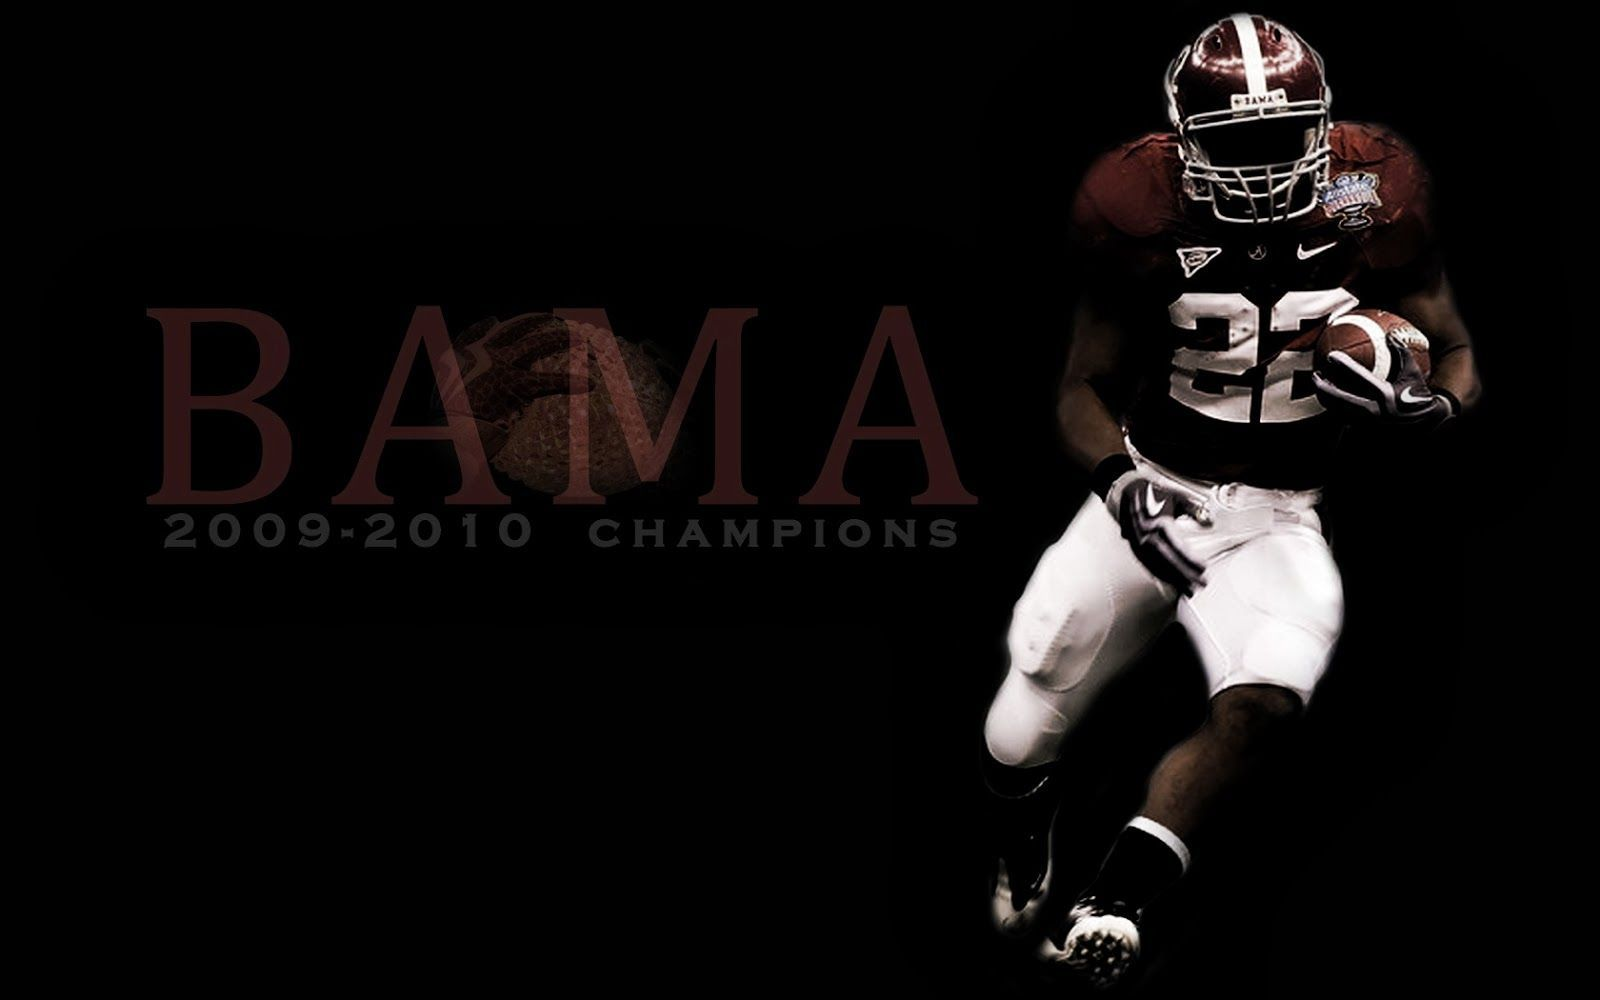 Collection Of Cool Football Wallpaper On Hdwallpapers 1600 900 Cool Football Wallpapers 67 Alabama Football Team Football Wallpaper Alabama Football Pictures